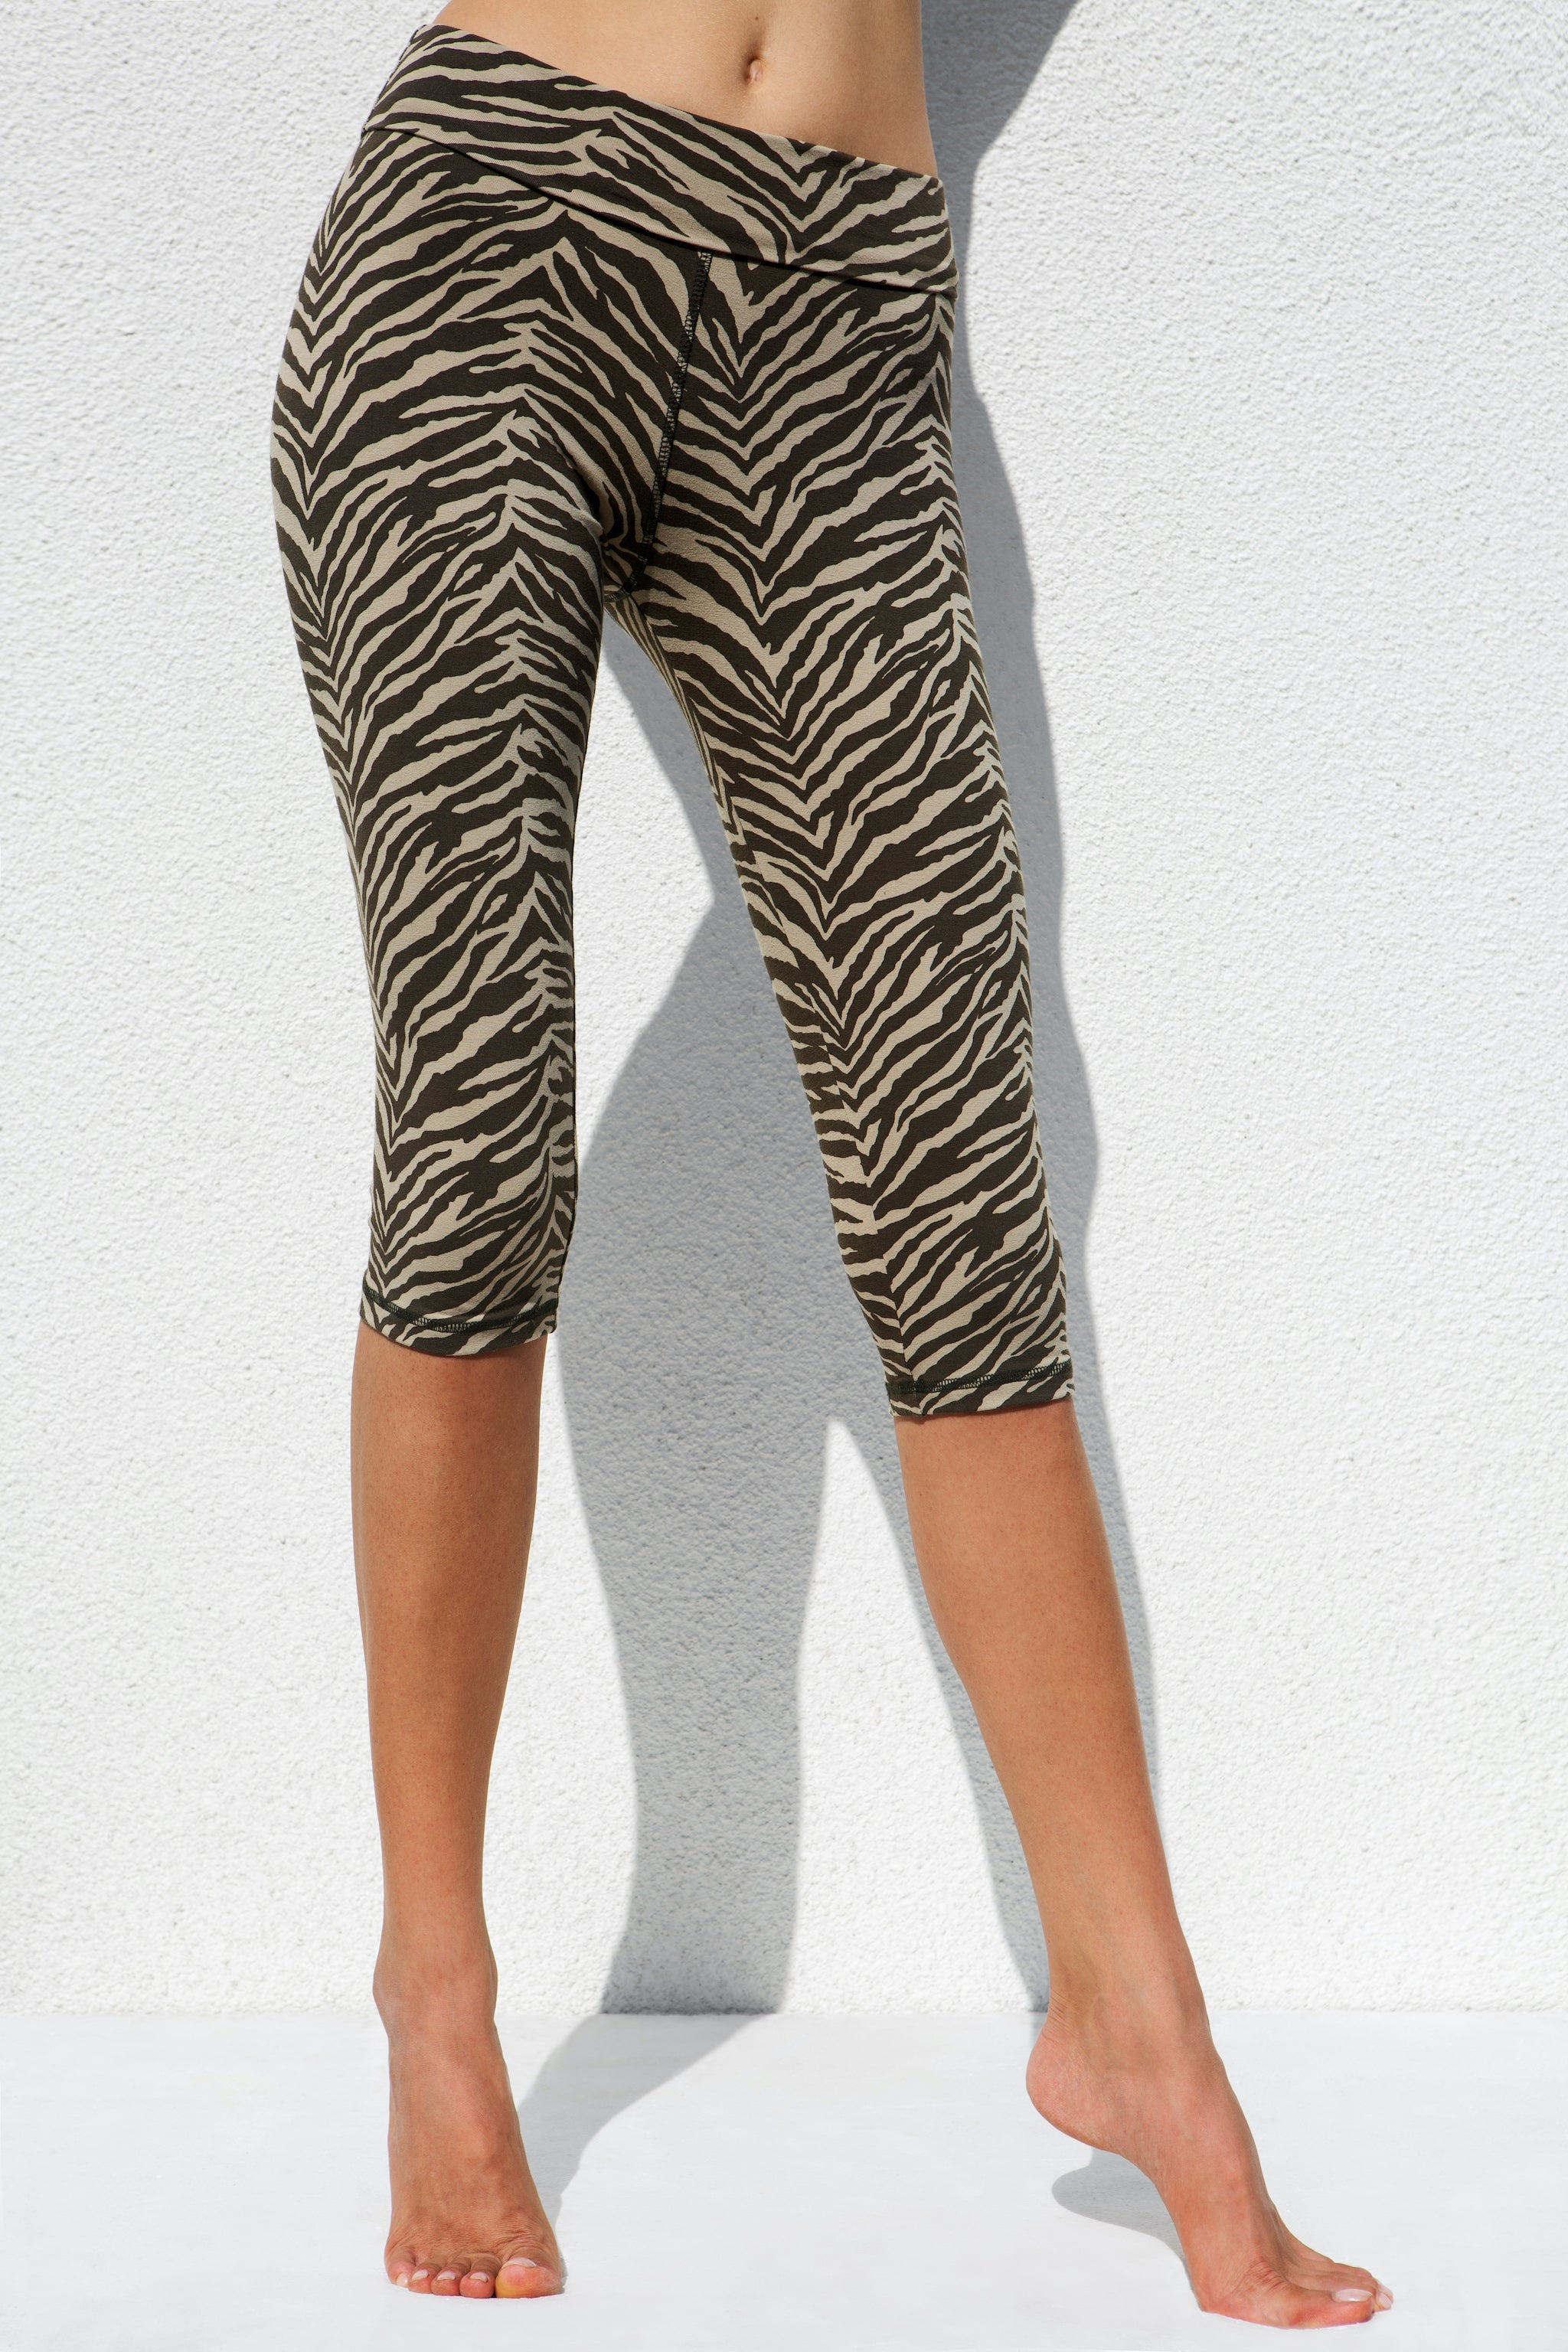 High Waist Capri Tights - Zebra Cream Olive-green